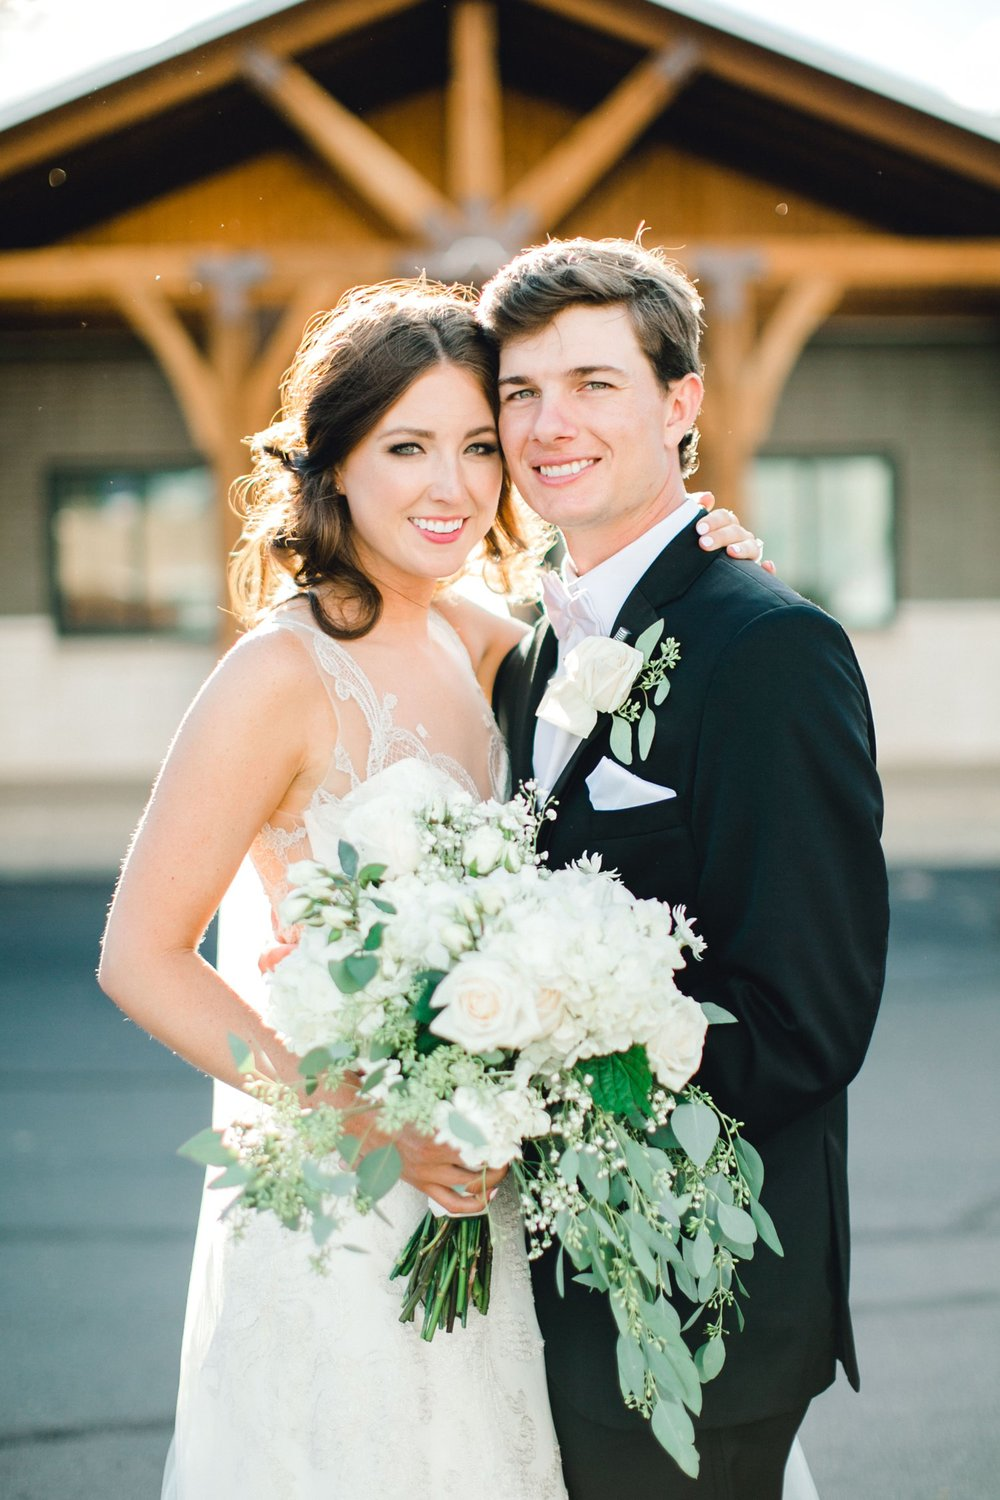 Hunter_and_Molly_Rawls_ALLEEJ_Lubbock_WEDDING_Legacy_Event_Center_0132.jpg